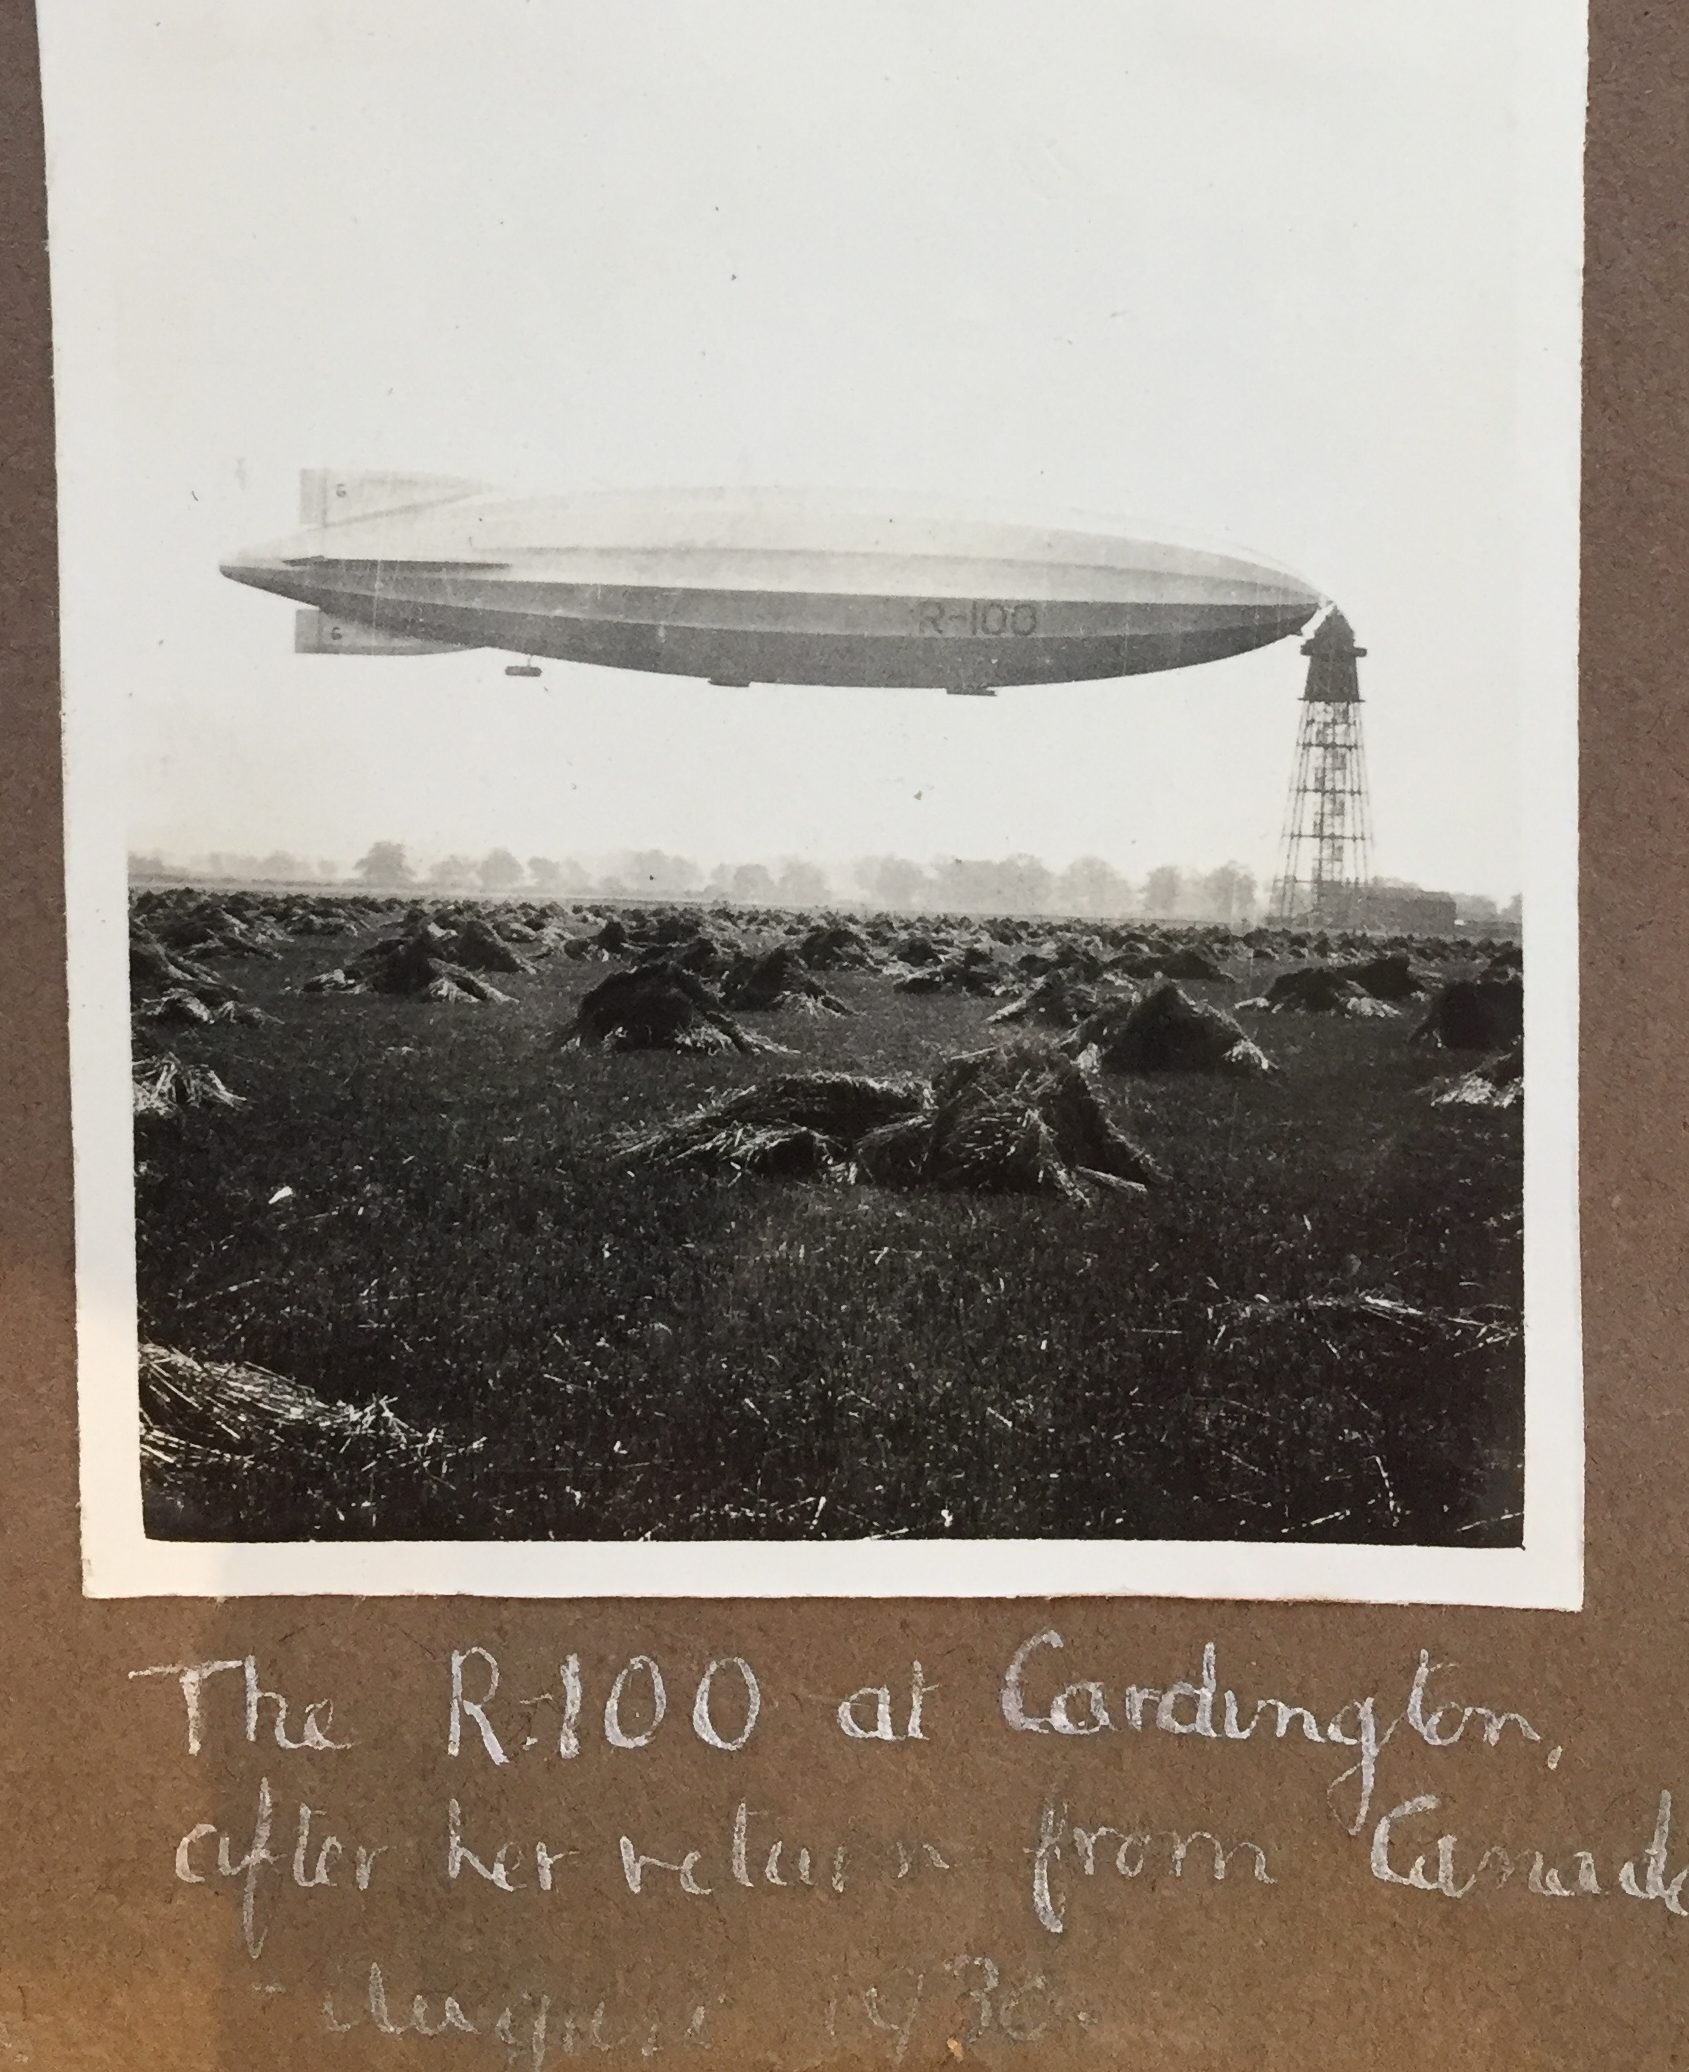 Photographs of R100 airship